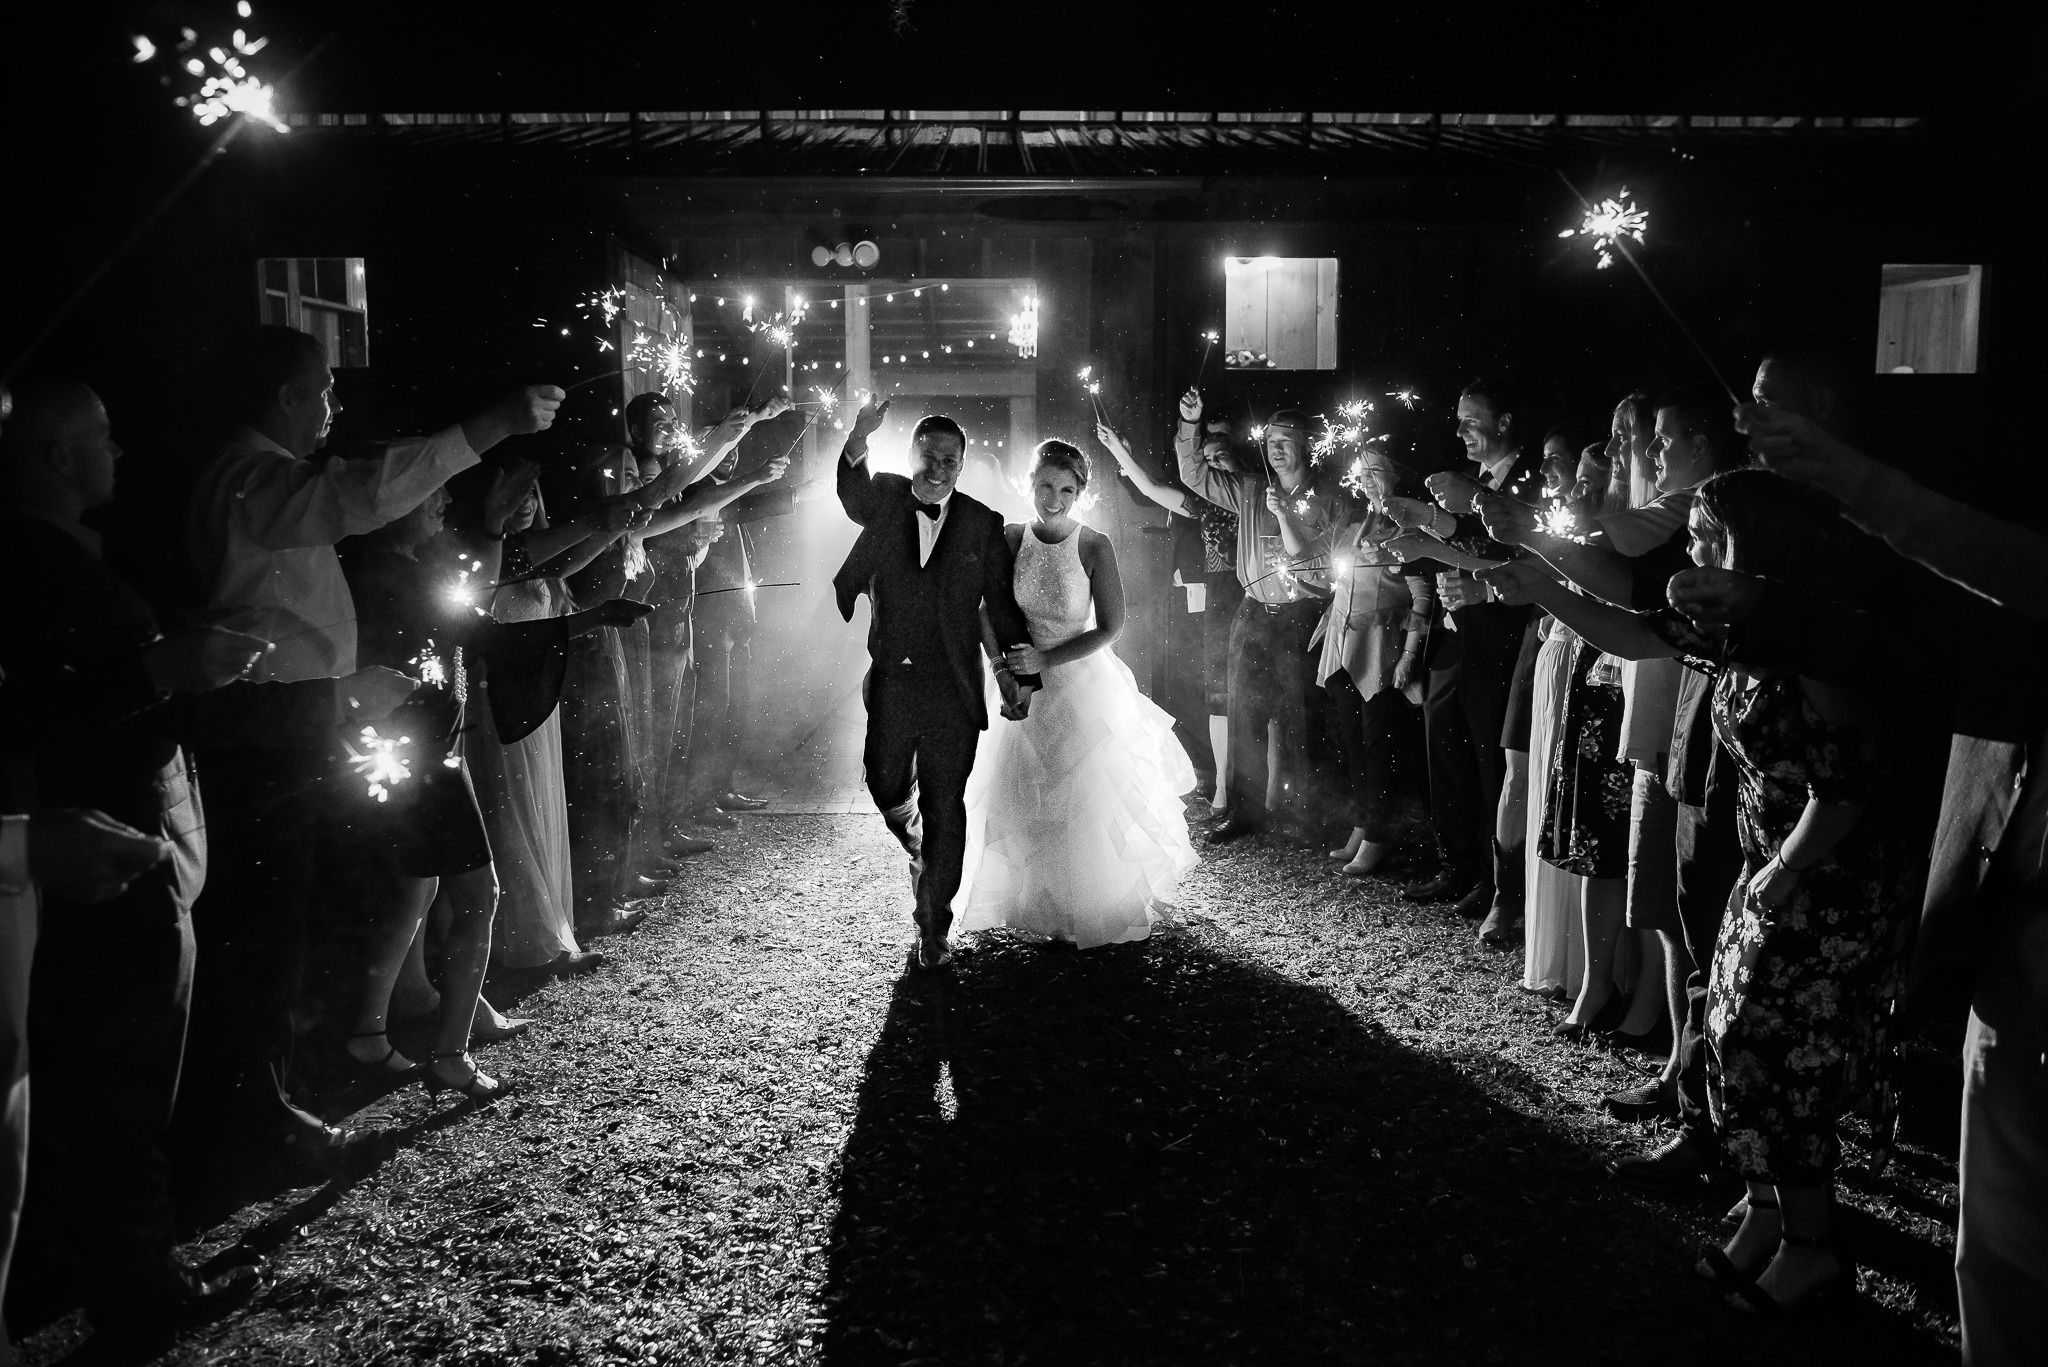 TAMPA_WEDDING_PHOTOGRAPHER_DRMZ_SPARROW_BARN_50.jpg